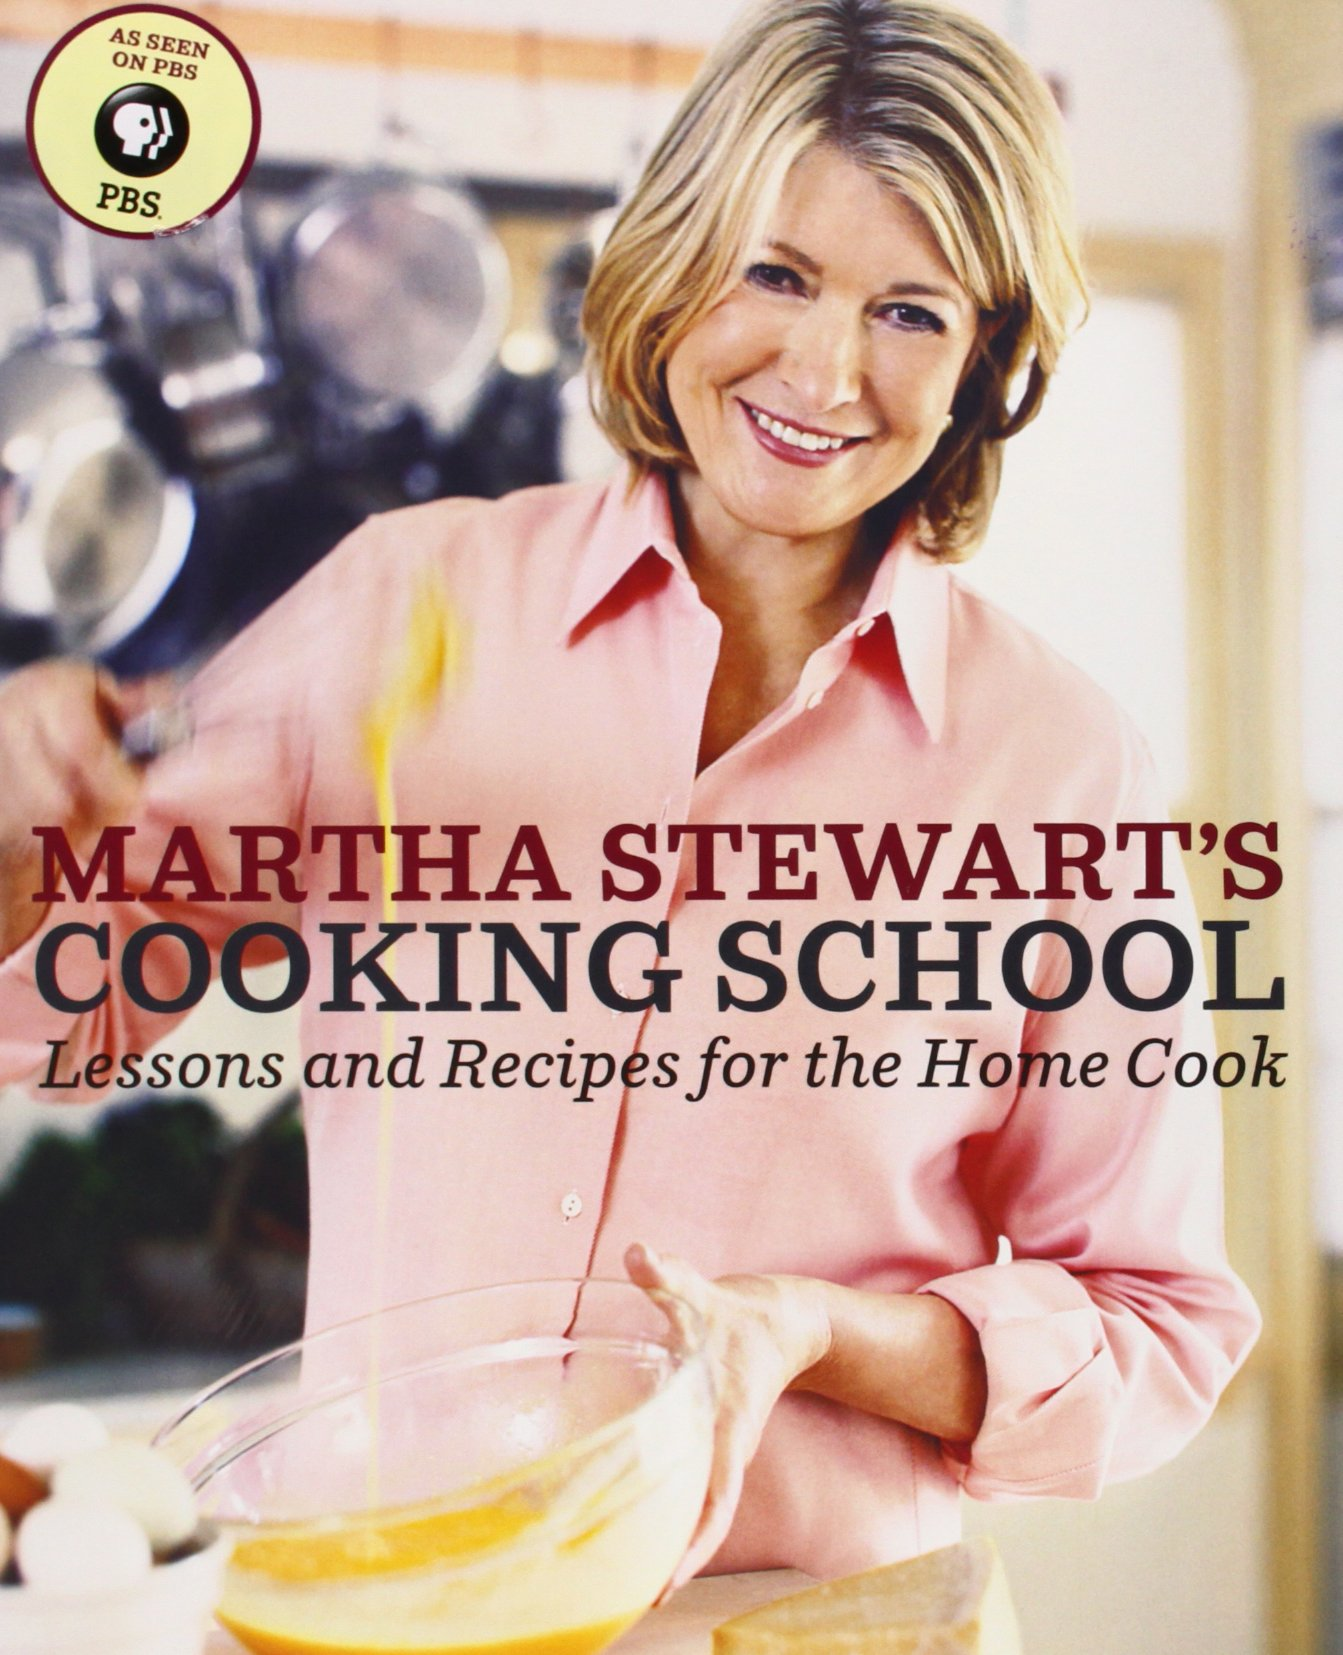 Martha Stewart S Cooking School Lessons And Recipes For The Home Cook Martha Stewart 8601400525814 Amazon Com Books